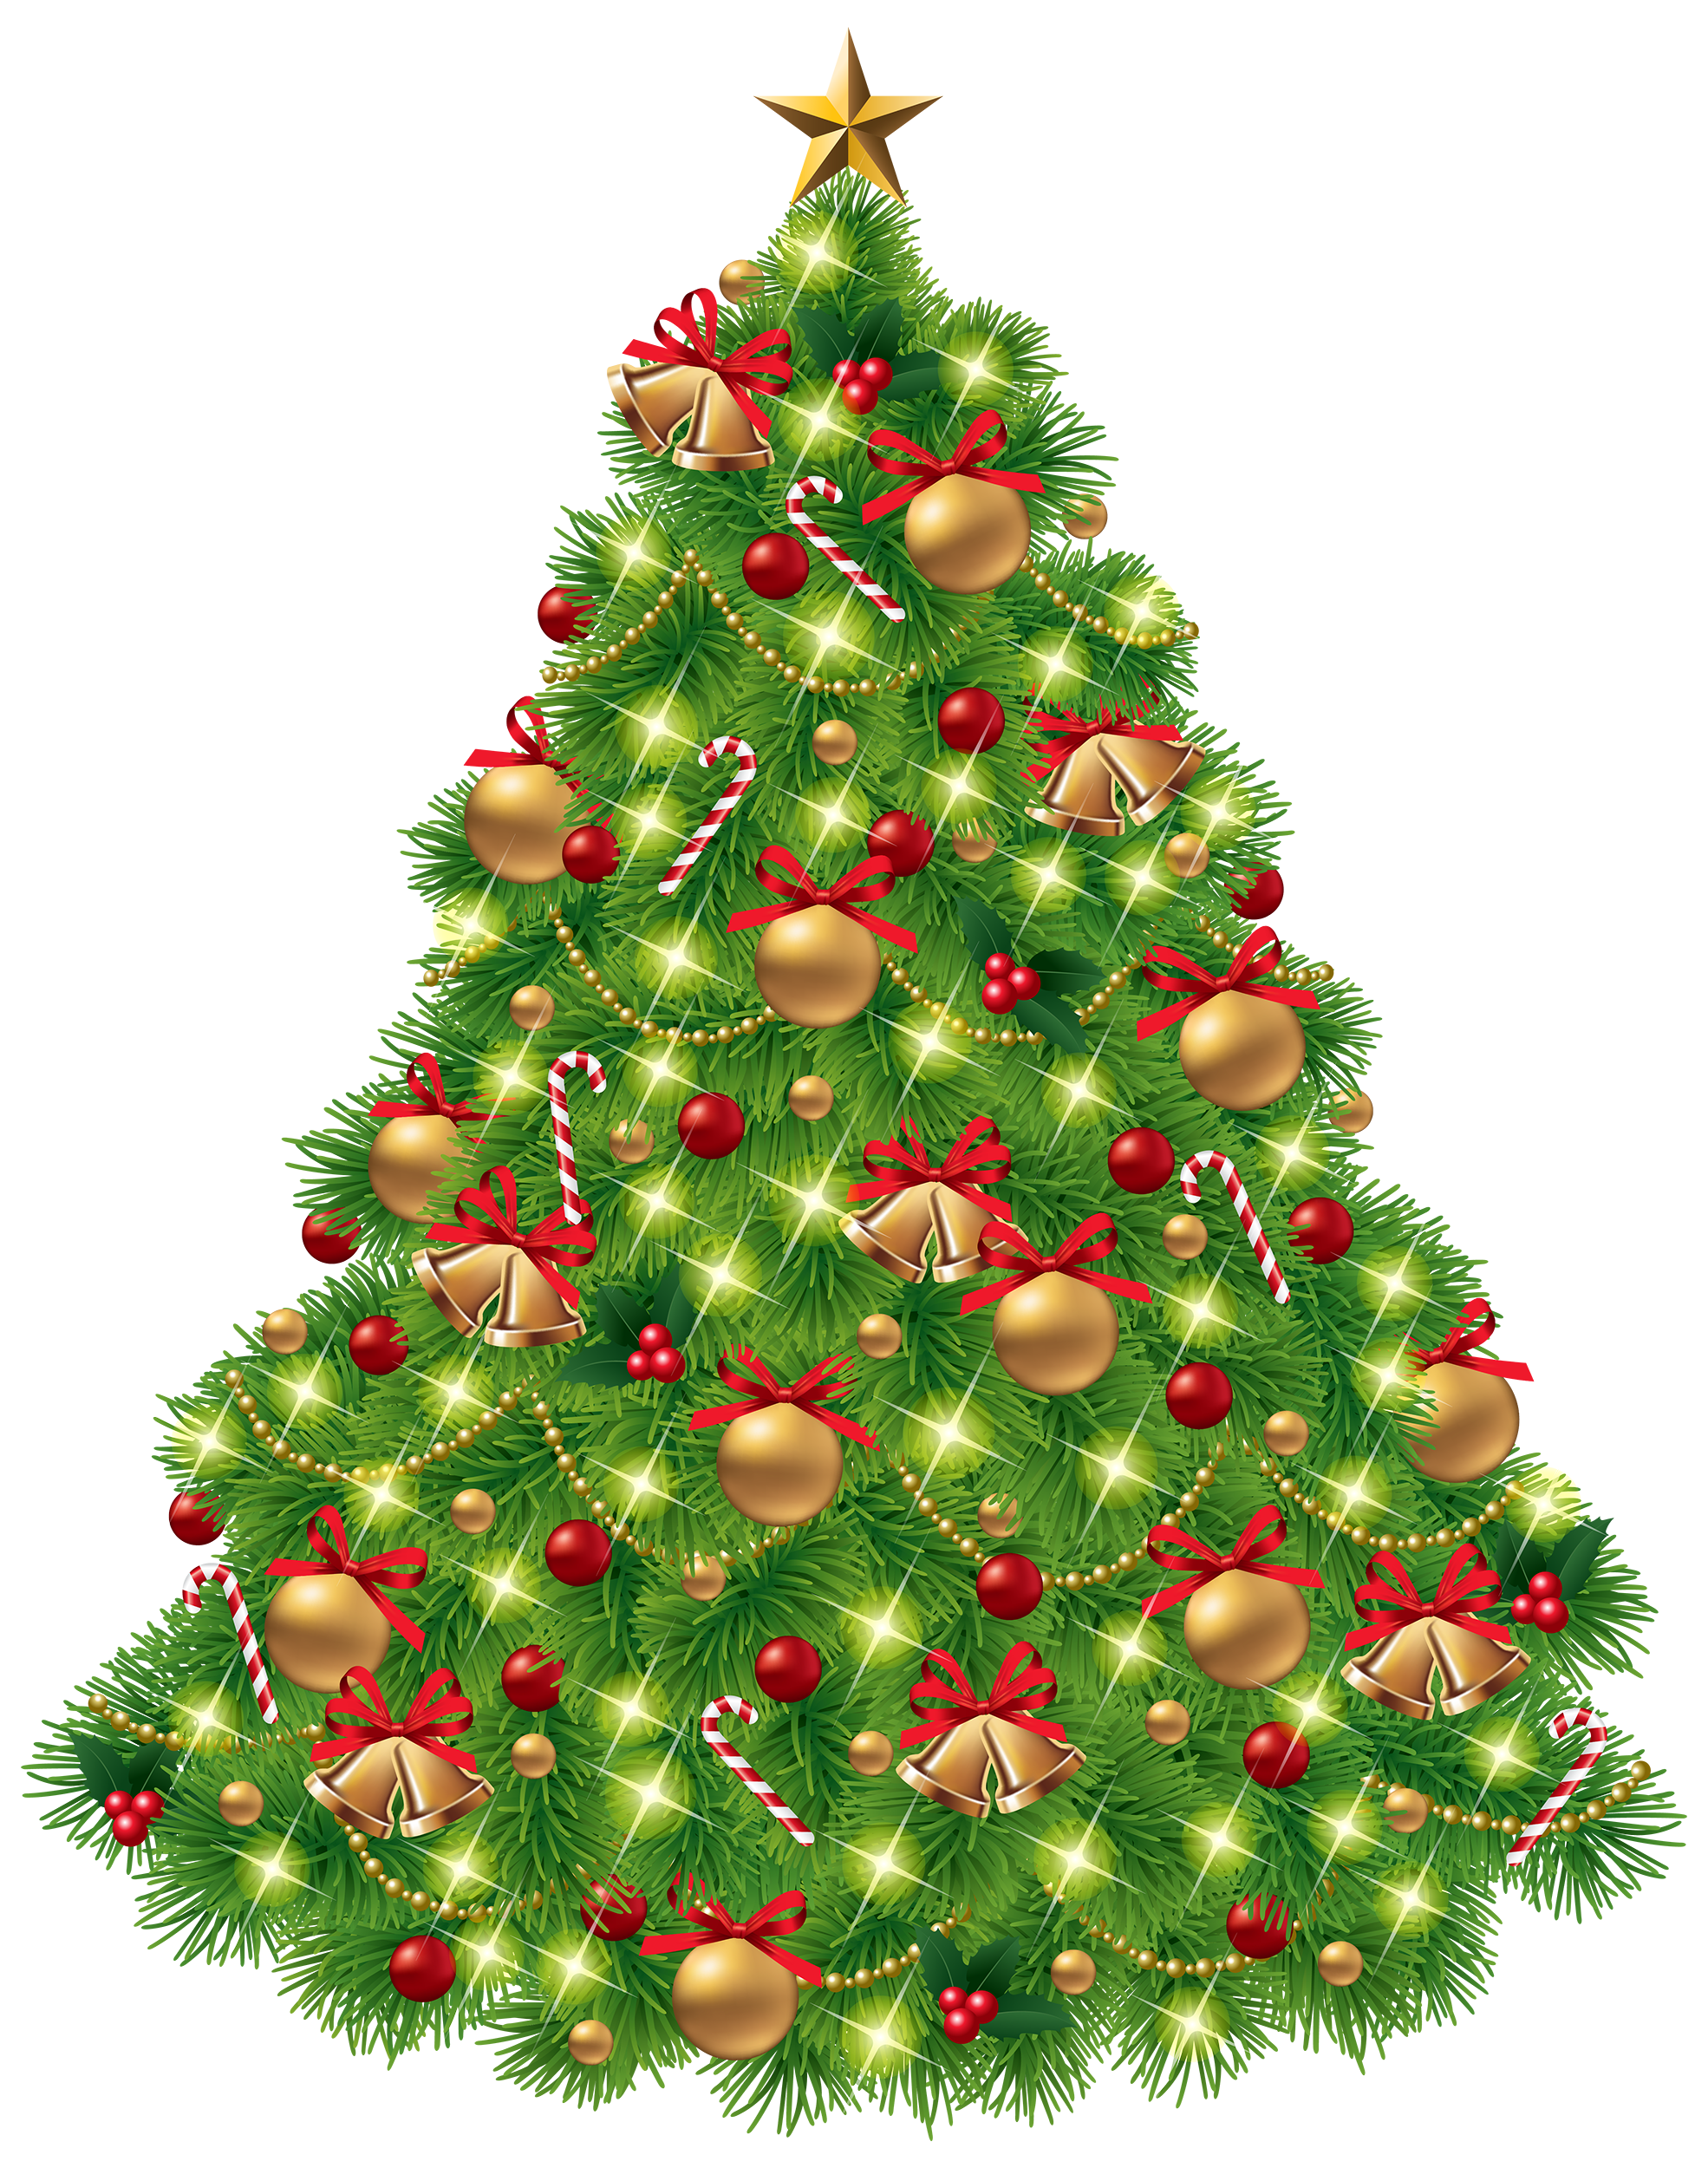 Christmas Tree Clipart with Decoration PNG Image - PurePNG ...